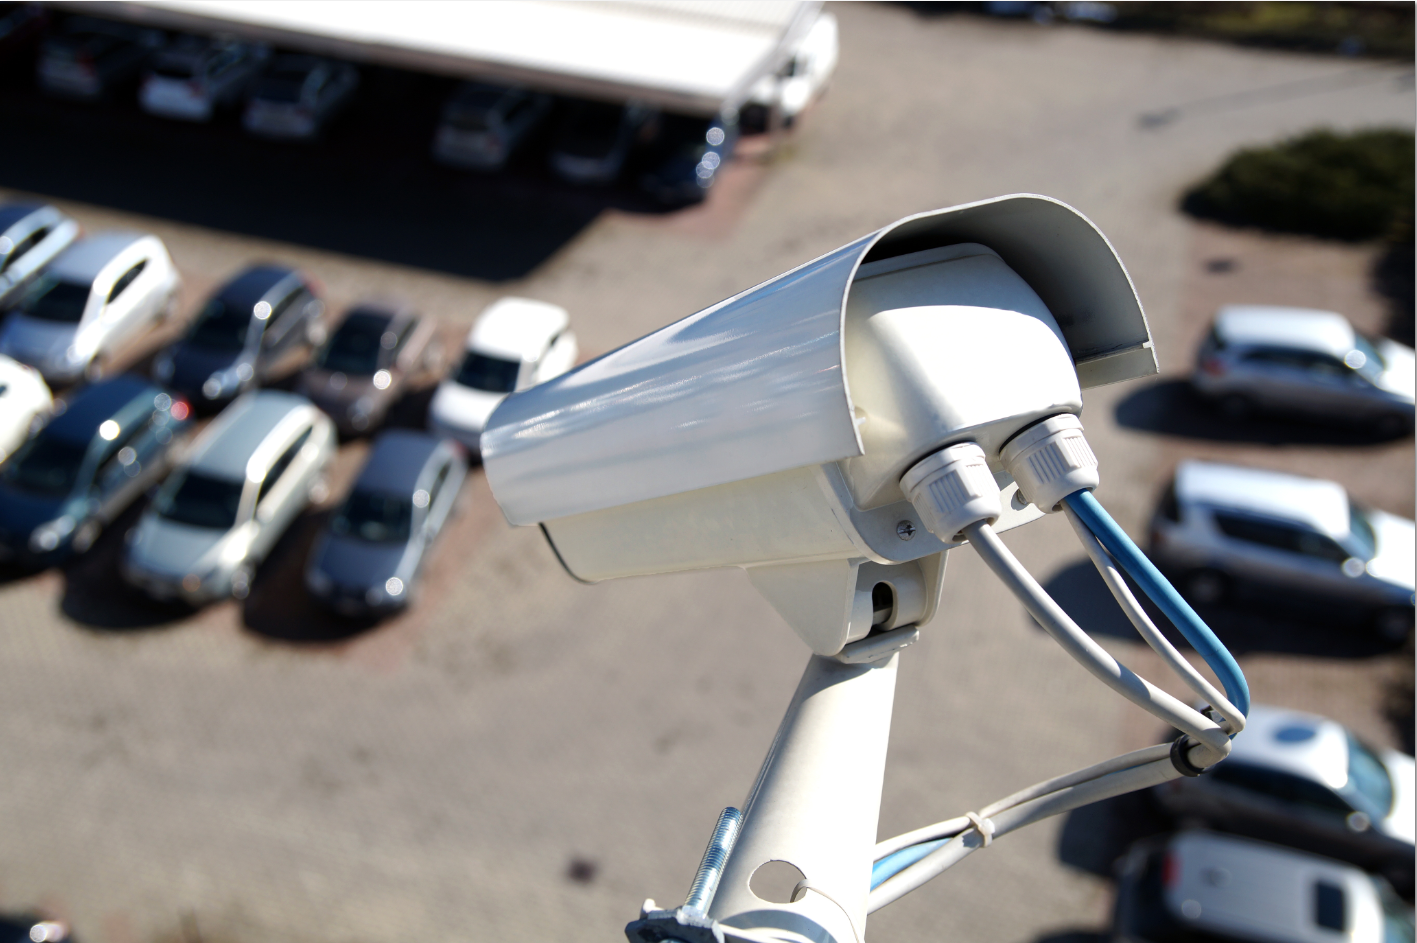 Security Camera Repair in Anaheim